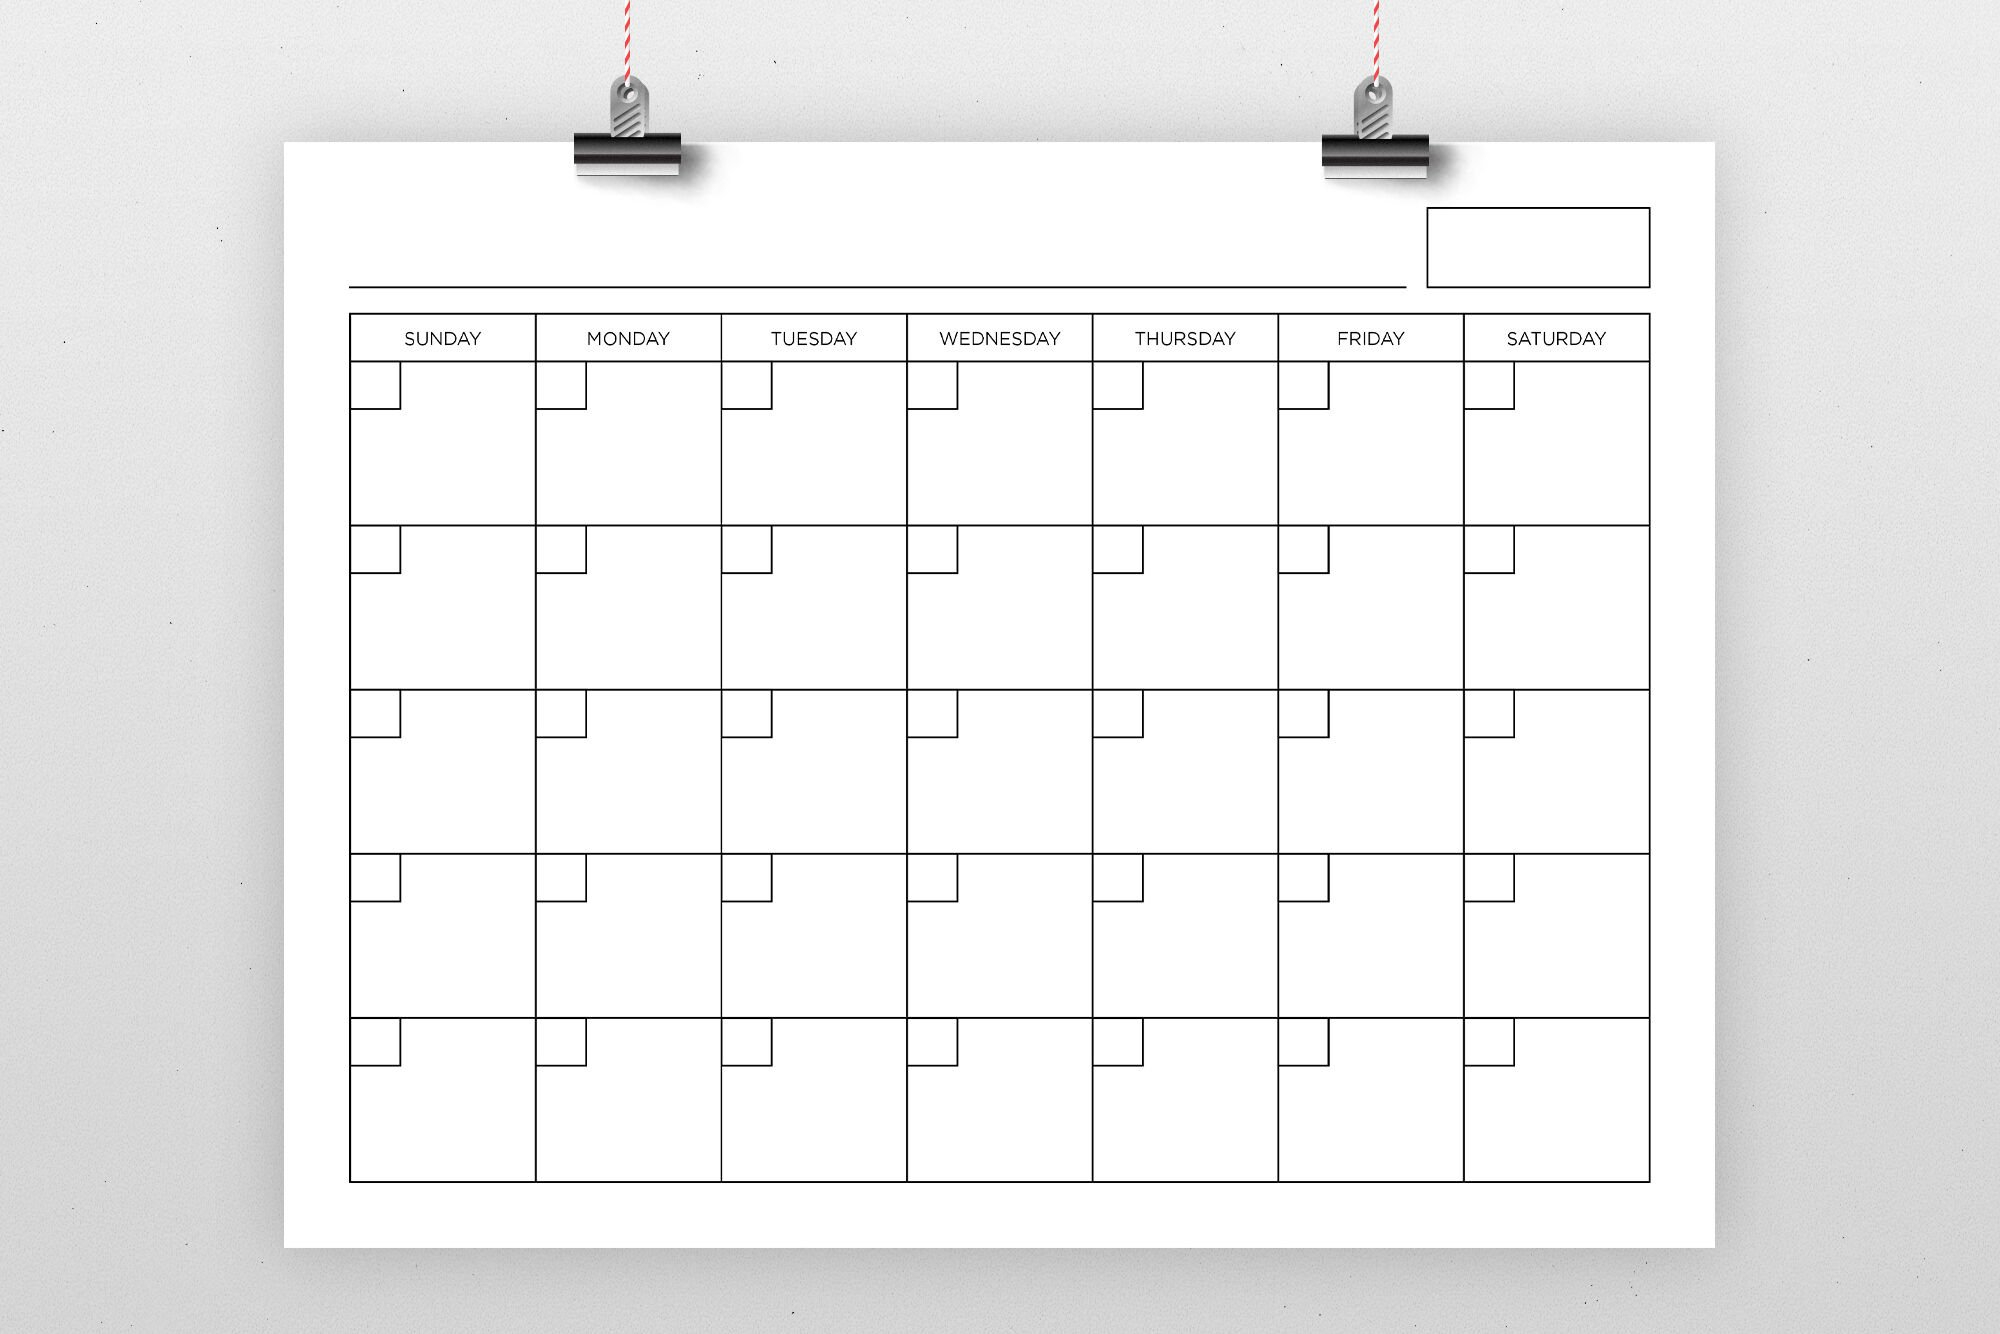 8.5 X 11 Inch Blank Calendar Page Templaterunning With Monday Through Friday 8 5 Calendar